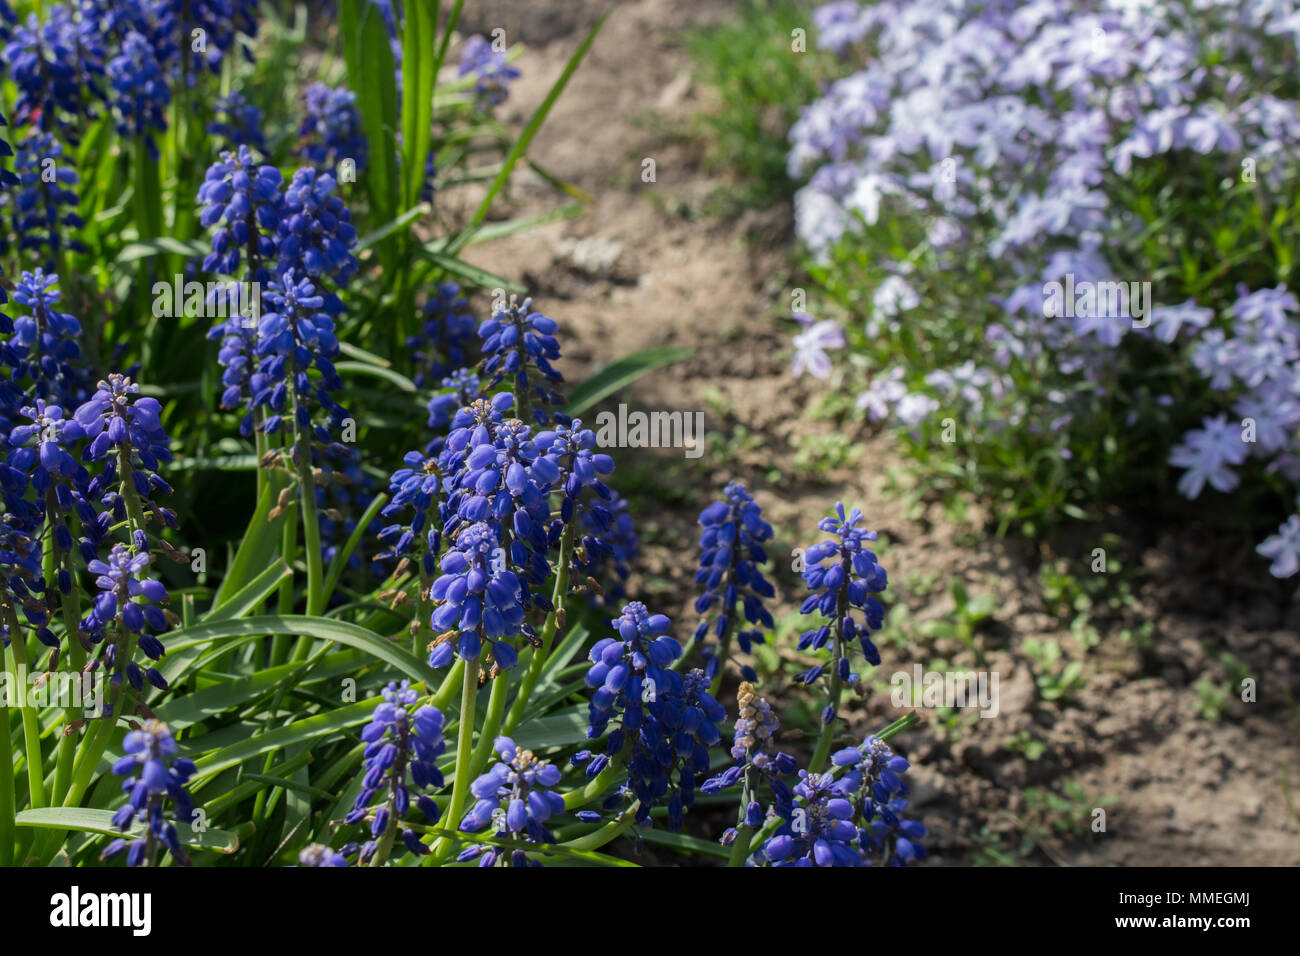 Blue Muscari Flowers On Blurred Green Grass Background In Spring